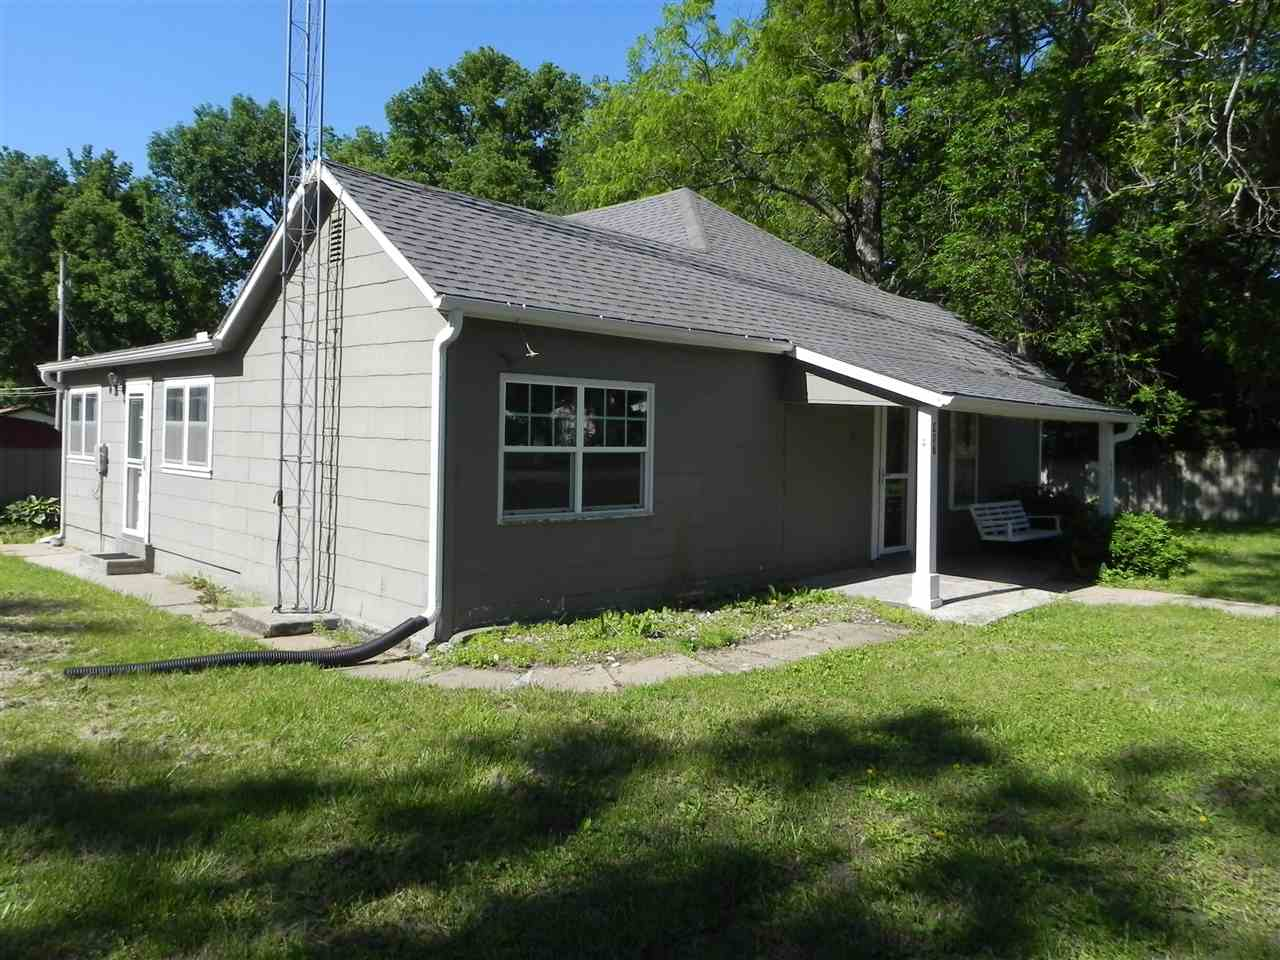 Small town living at its best in Westmoreland!  Setting on a huge corner lot this property is ready for its new owner.  If you are looking for a function, practical home that won't break the bank look no further!  Call Bill for a showing today. 620-921-5642